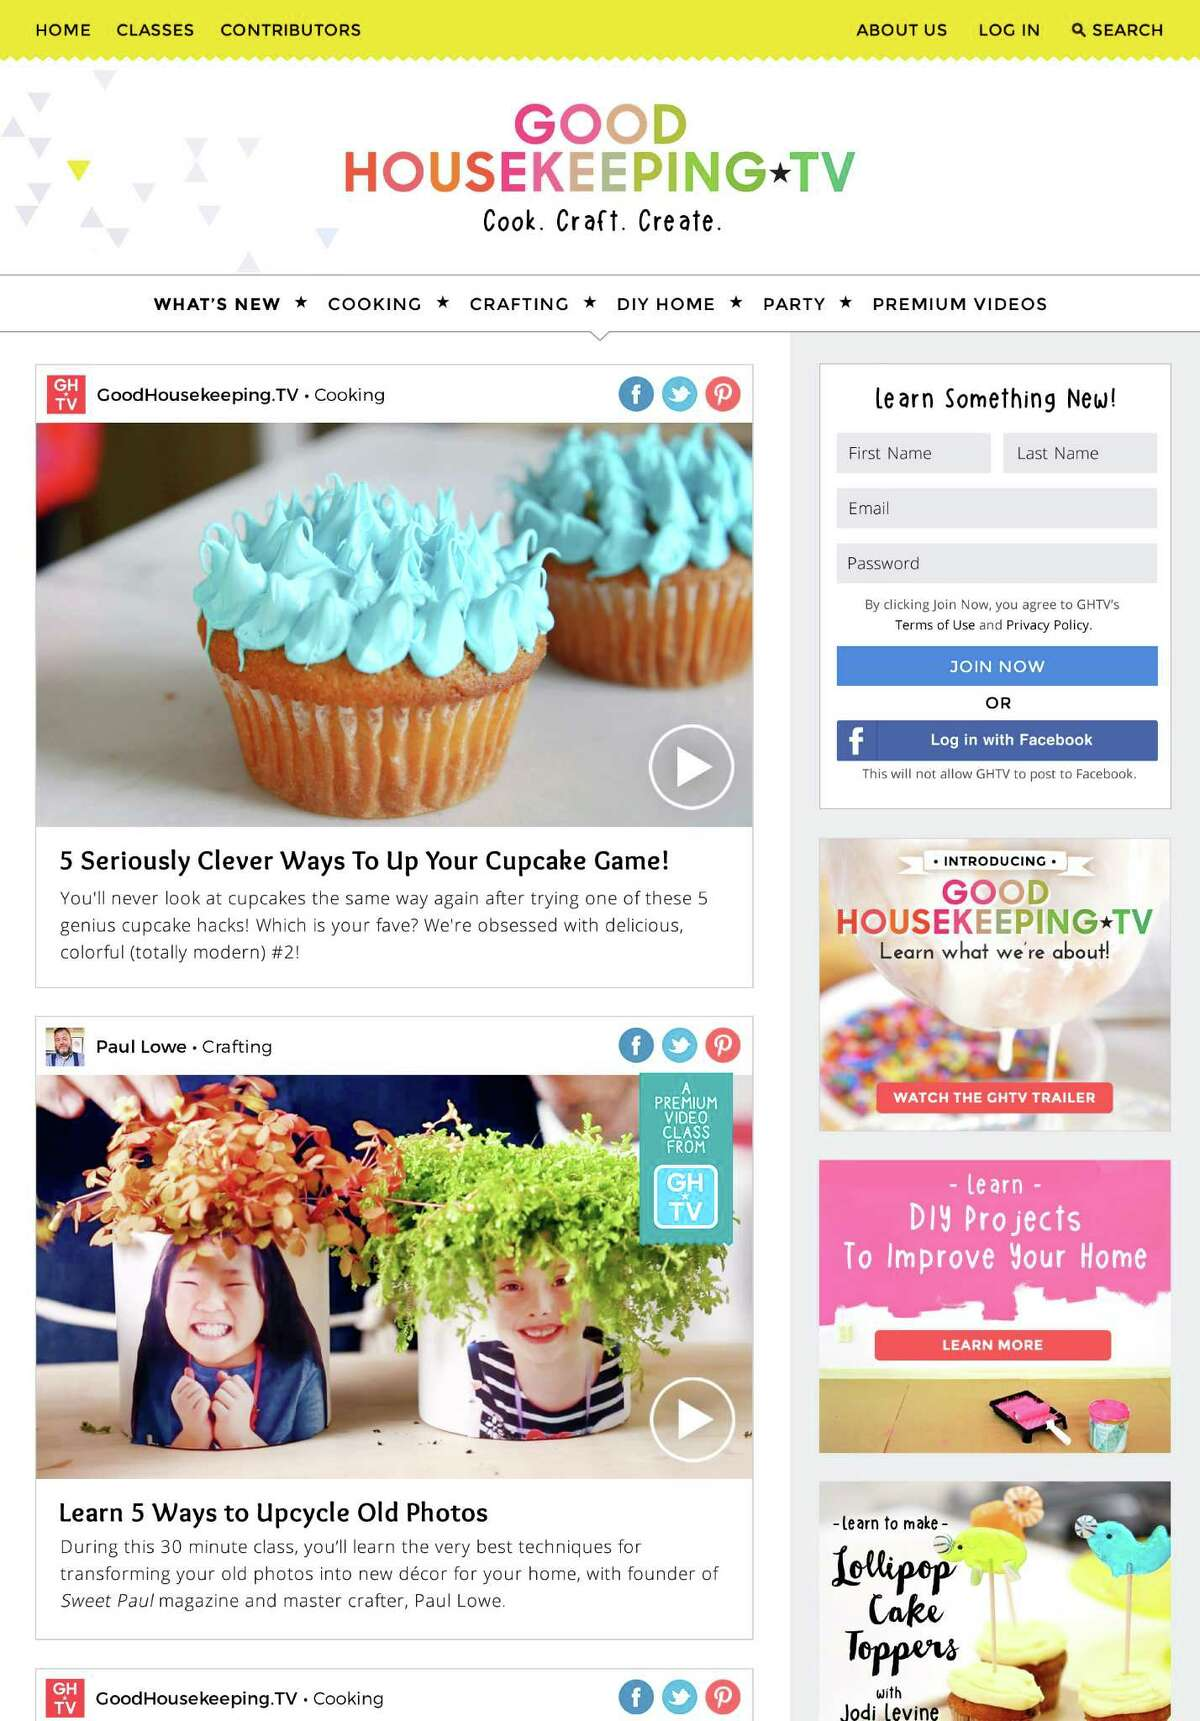 Good Housekeeping, in conjunction with Hearst Digital Studios, is launching GoodHousekeeping.TV, to provide video tutorials for arts, crafts, cooking and DIY projects.